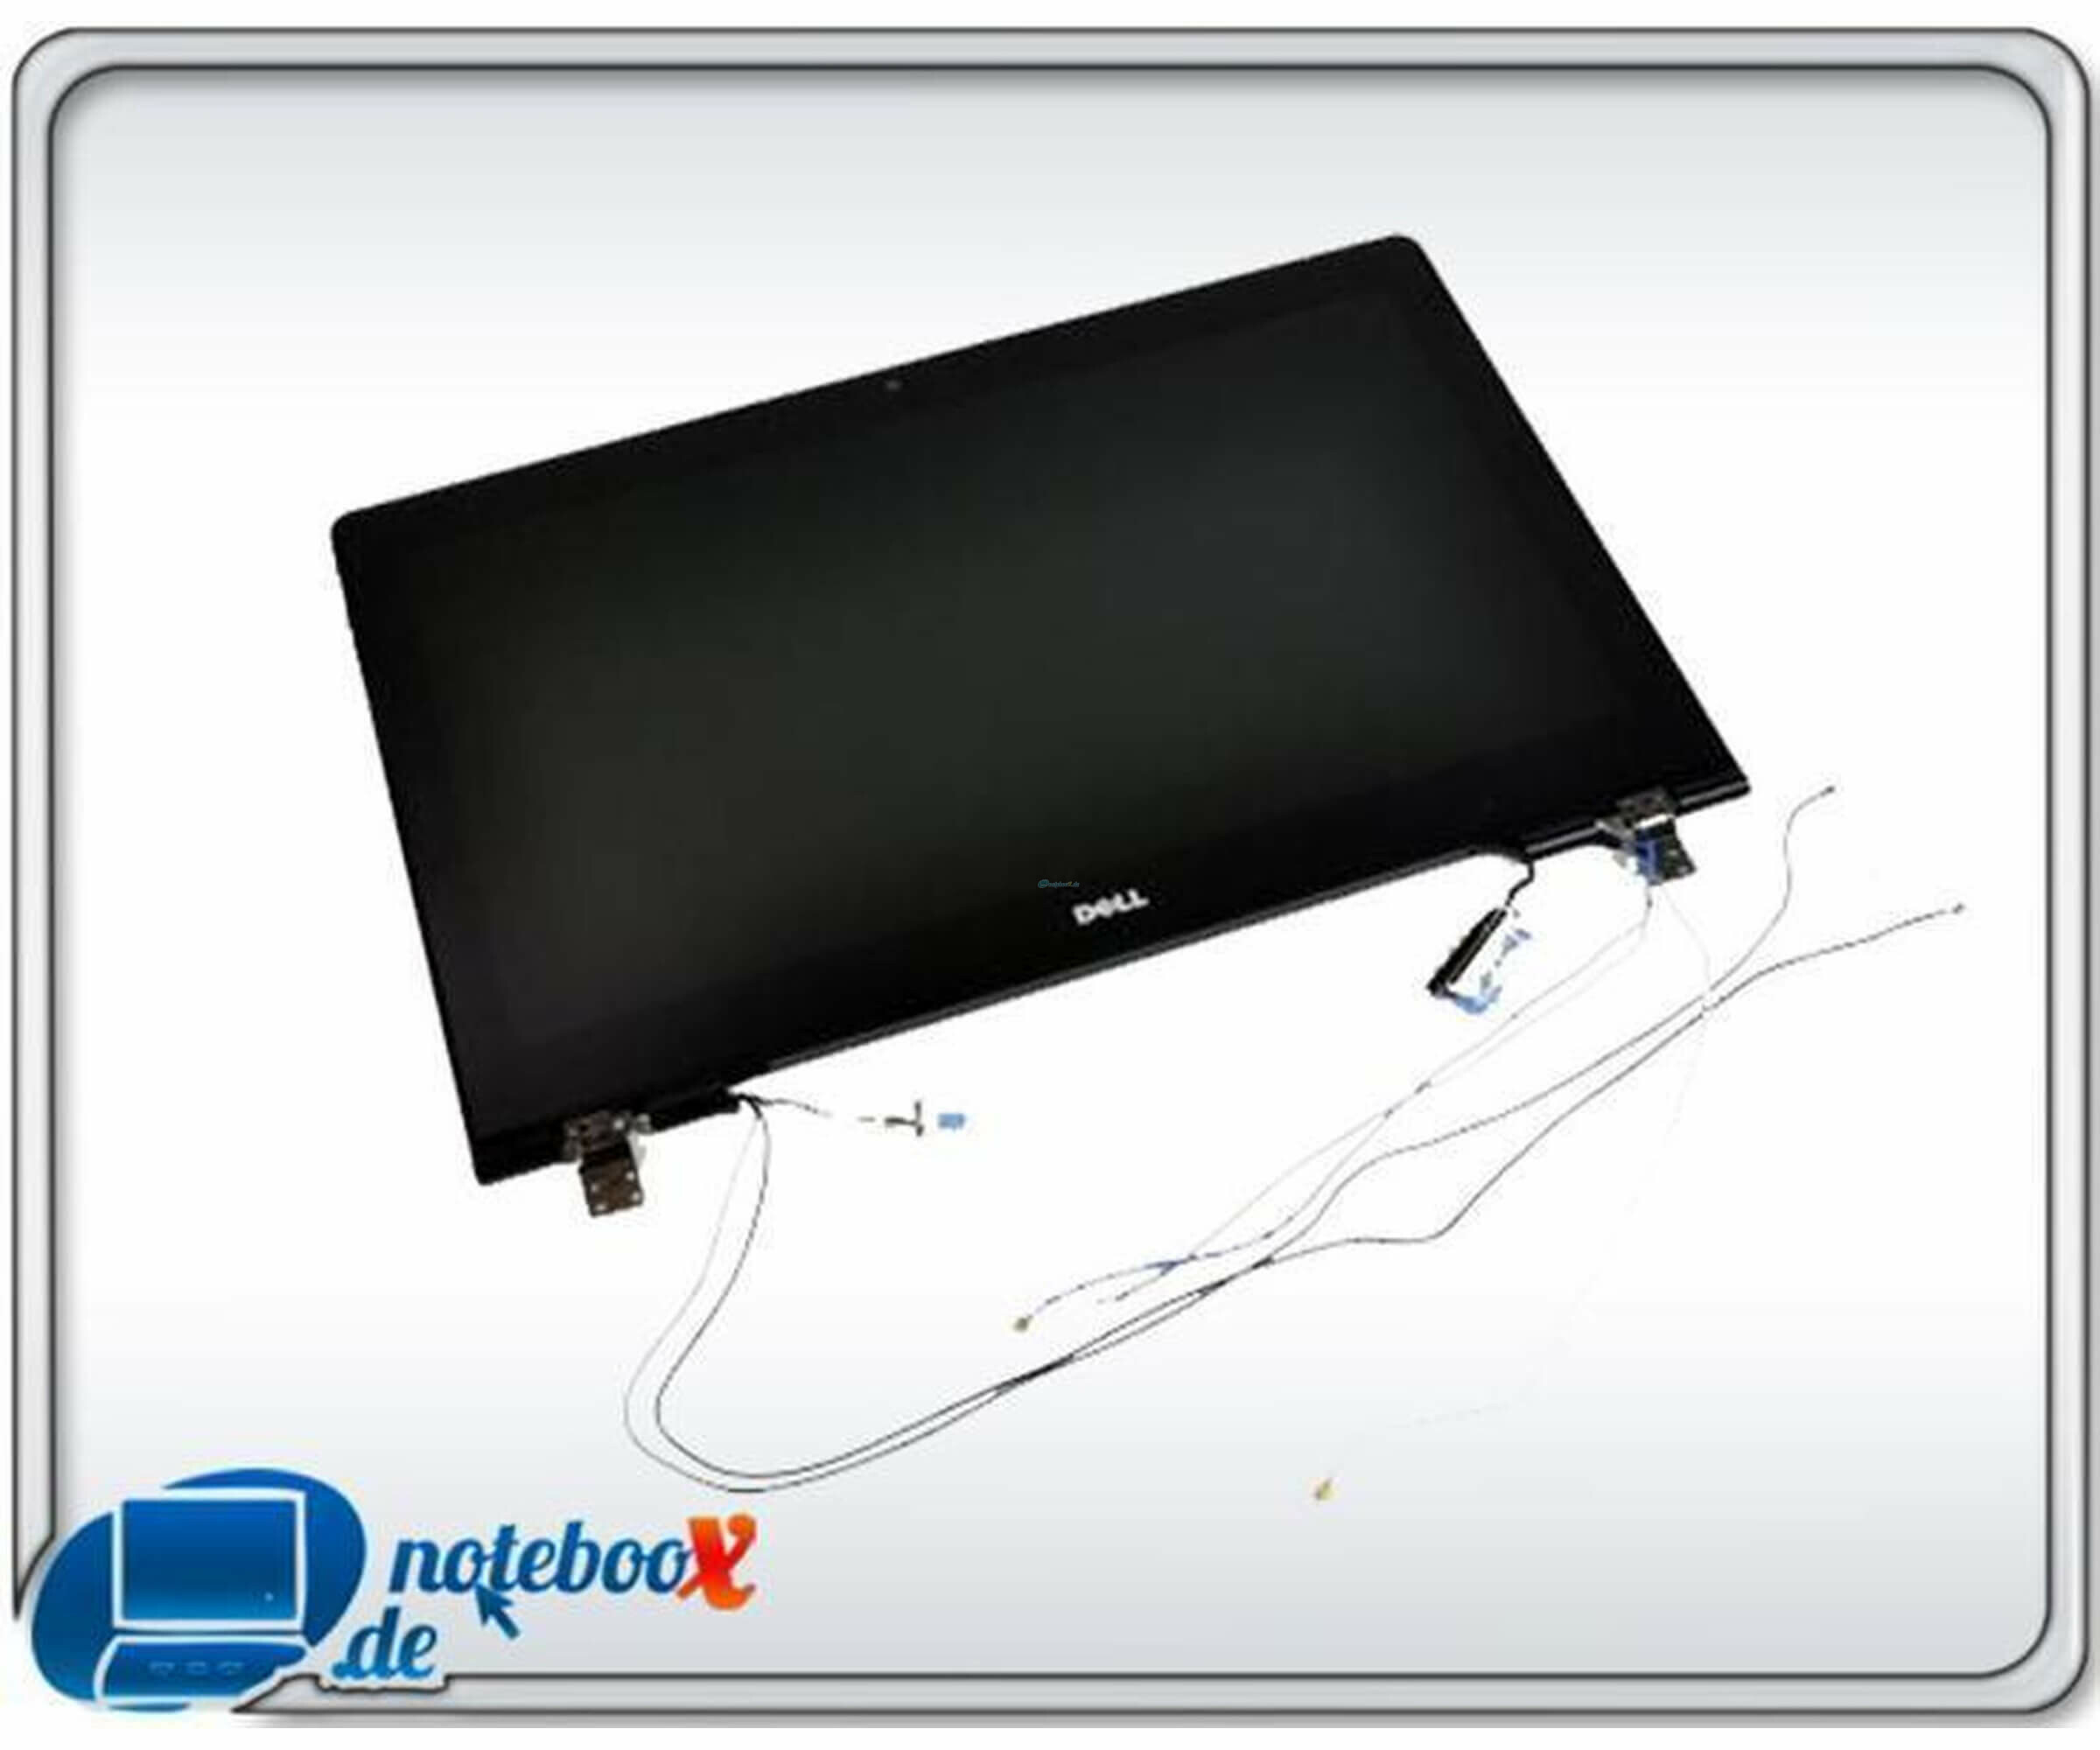 DELL Adamo 13,4 Notebook Display 1366 x 768 Glossy